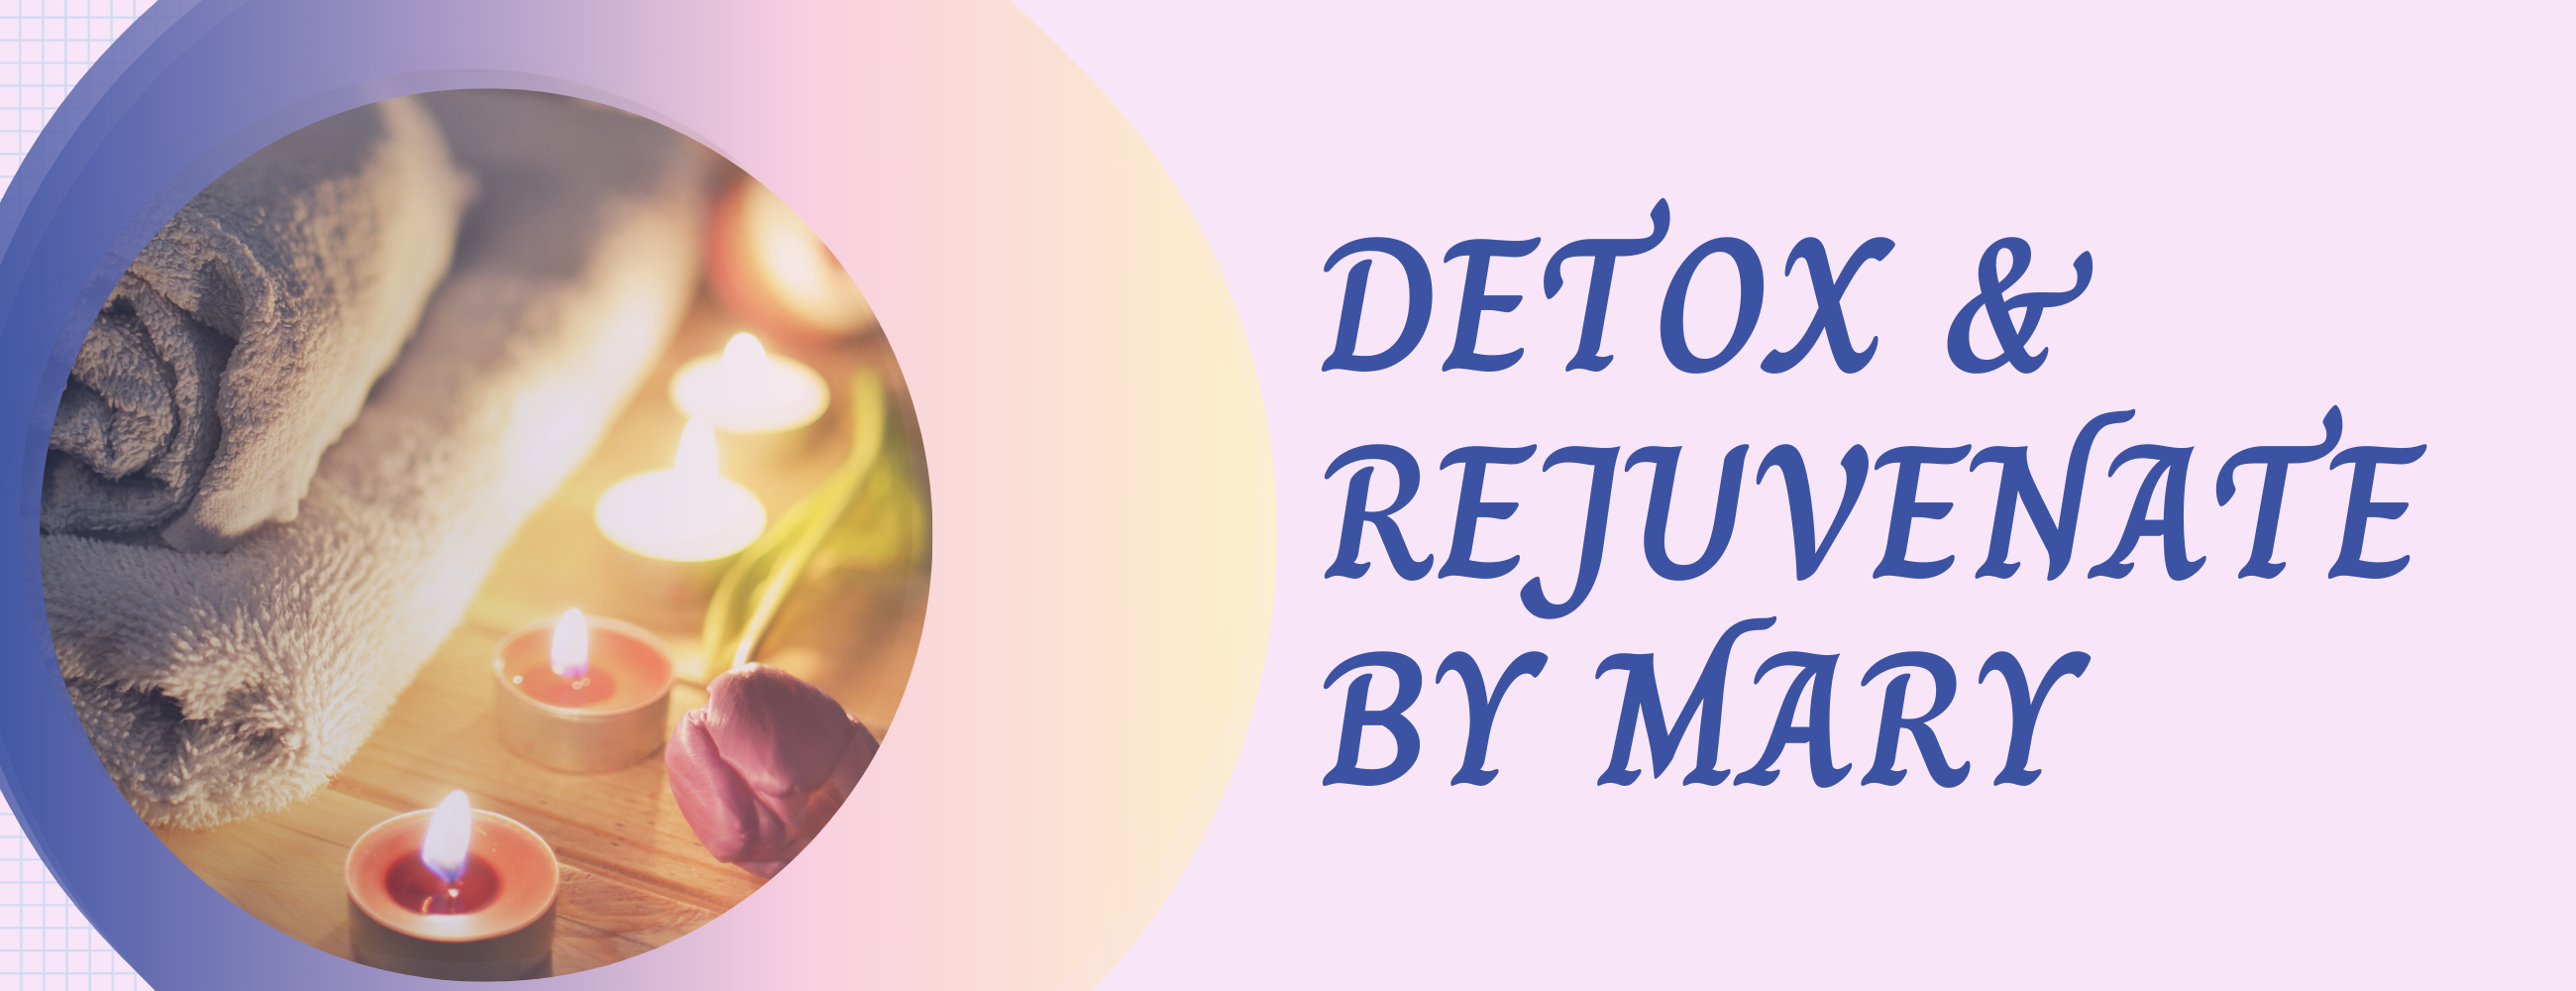 Detox & Rejuvenate